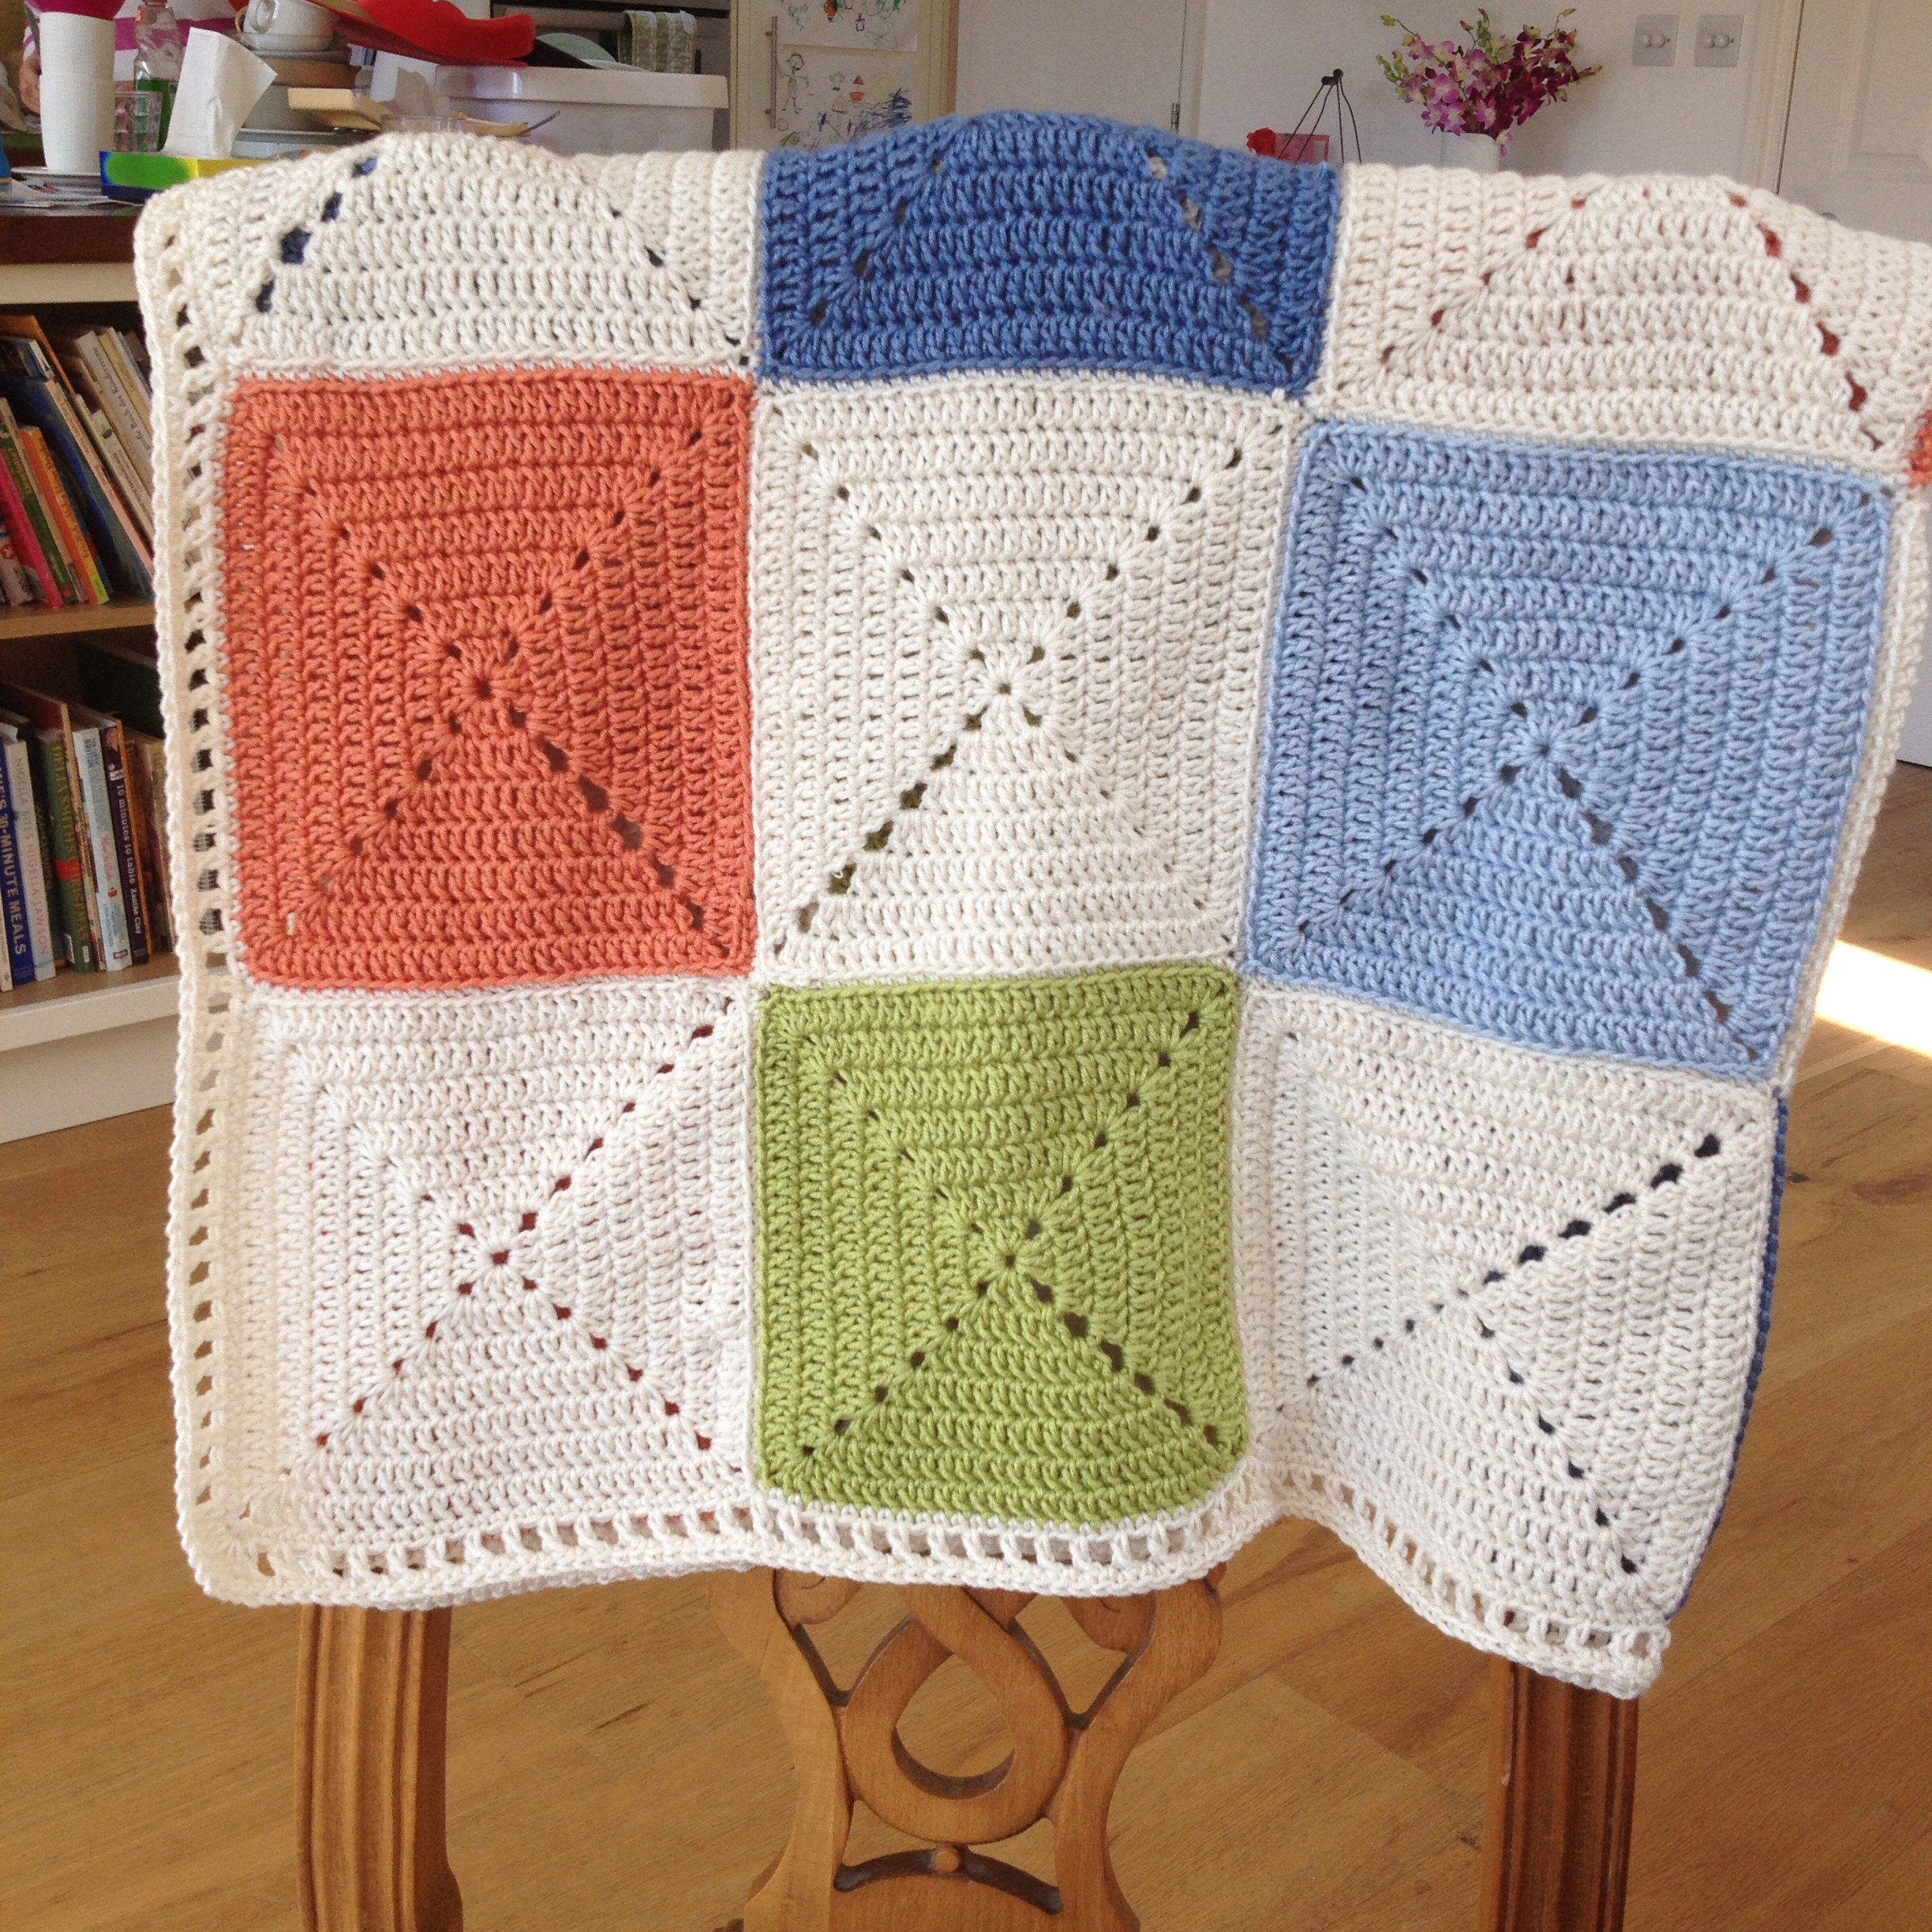 Crochet Granny Square Baby Blanket Crochet On A Train